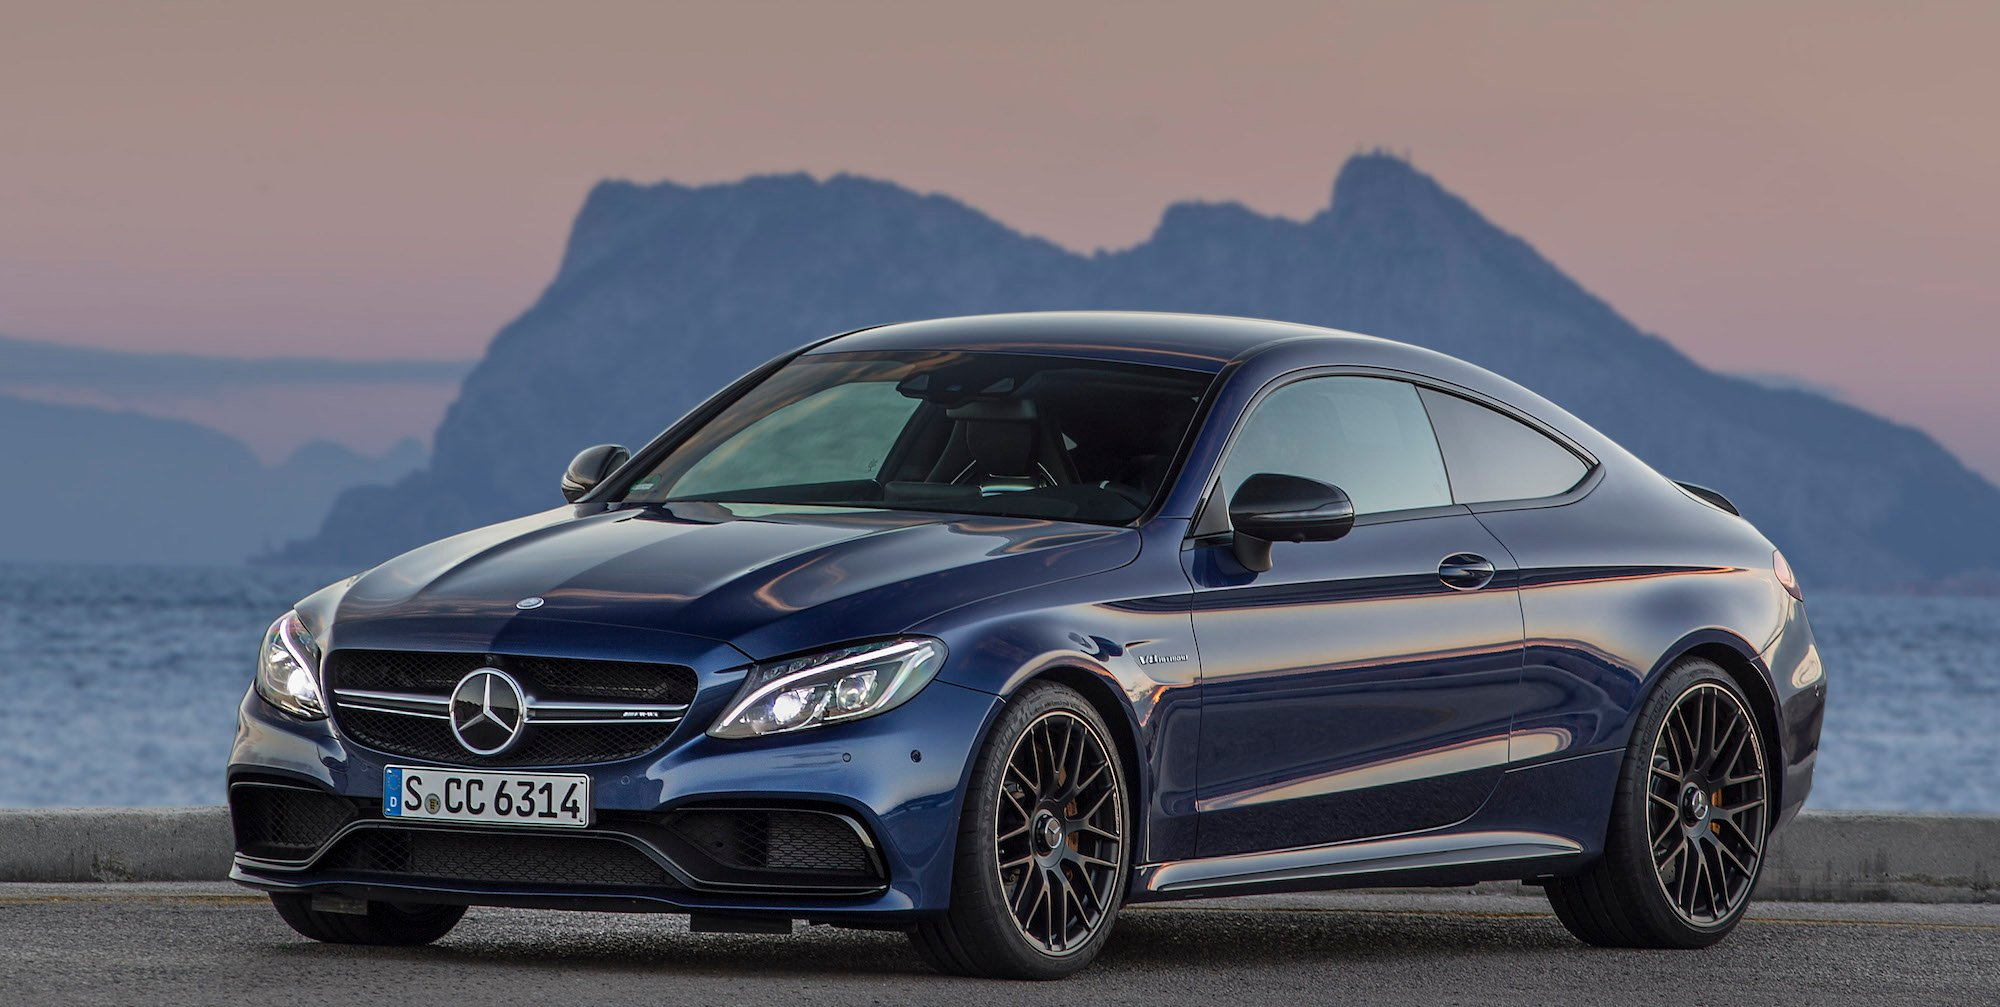 2016 mercedes amg c63 s coupe review photos caradvice. Black Bedroom Furniture Sets. Home Design Ideas